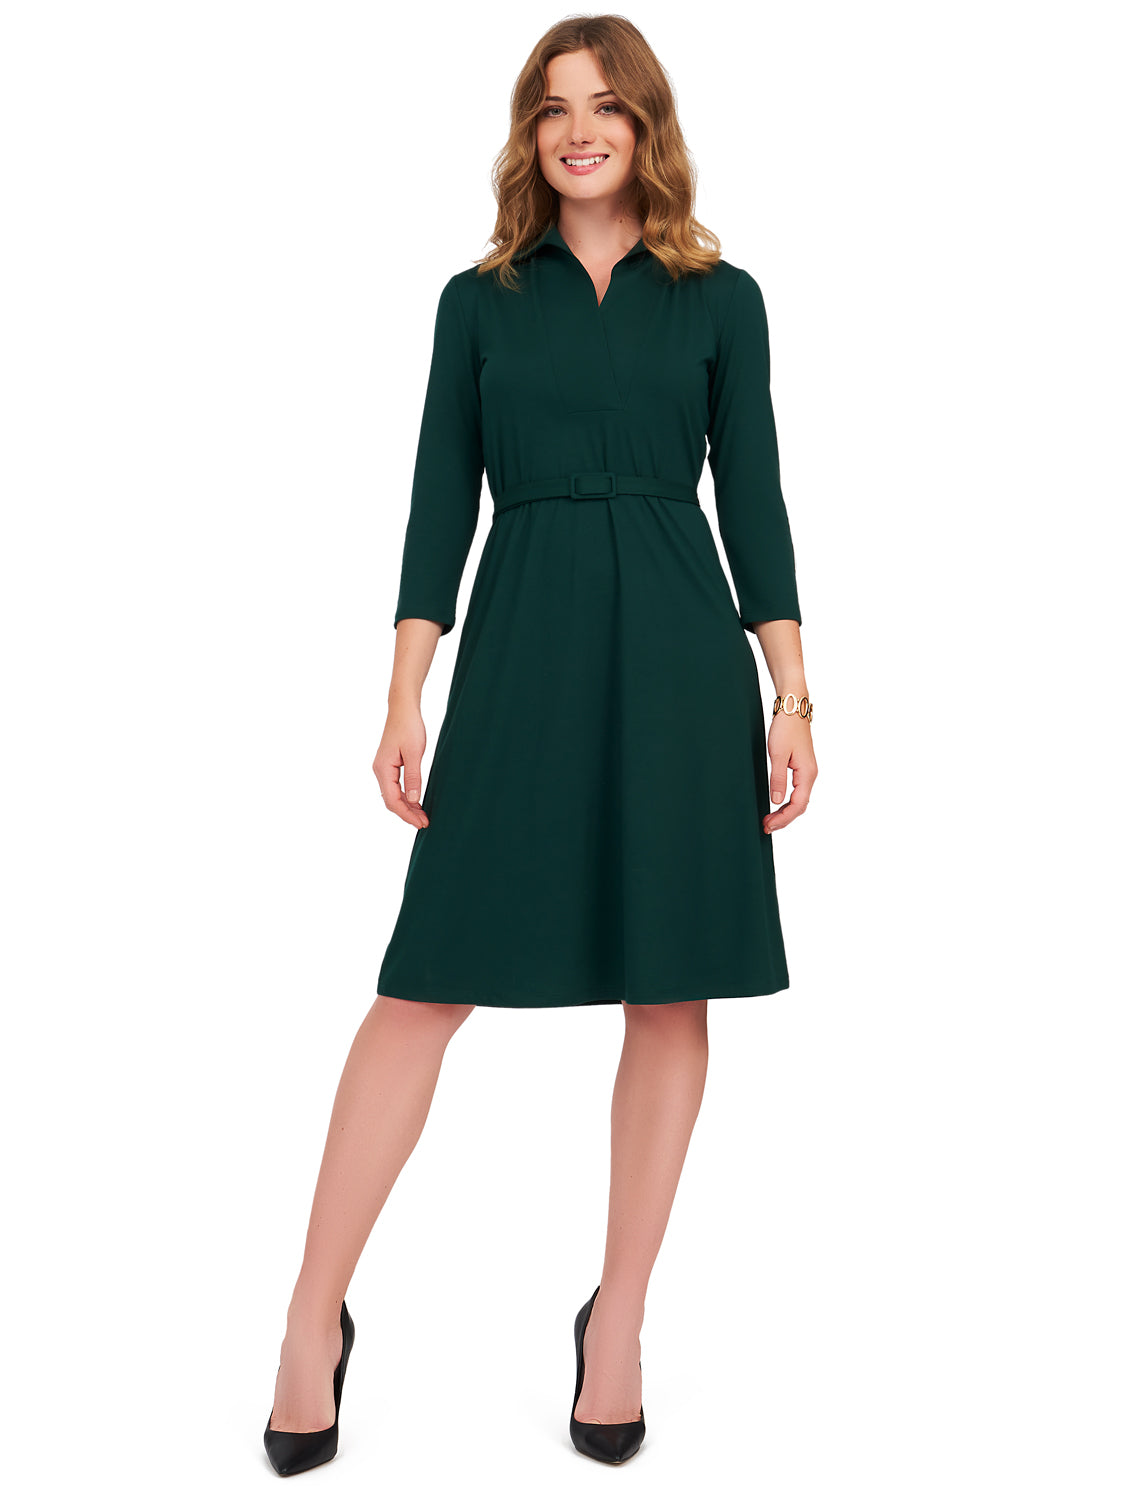 Robe Robe Manches Longues Robe Chemise Manches Longues À Chemise À Chemise MqSzUVpG